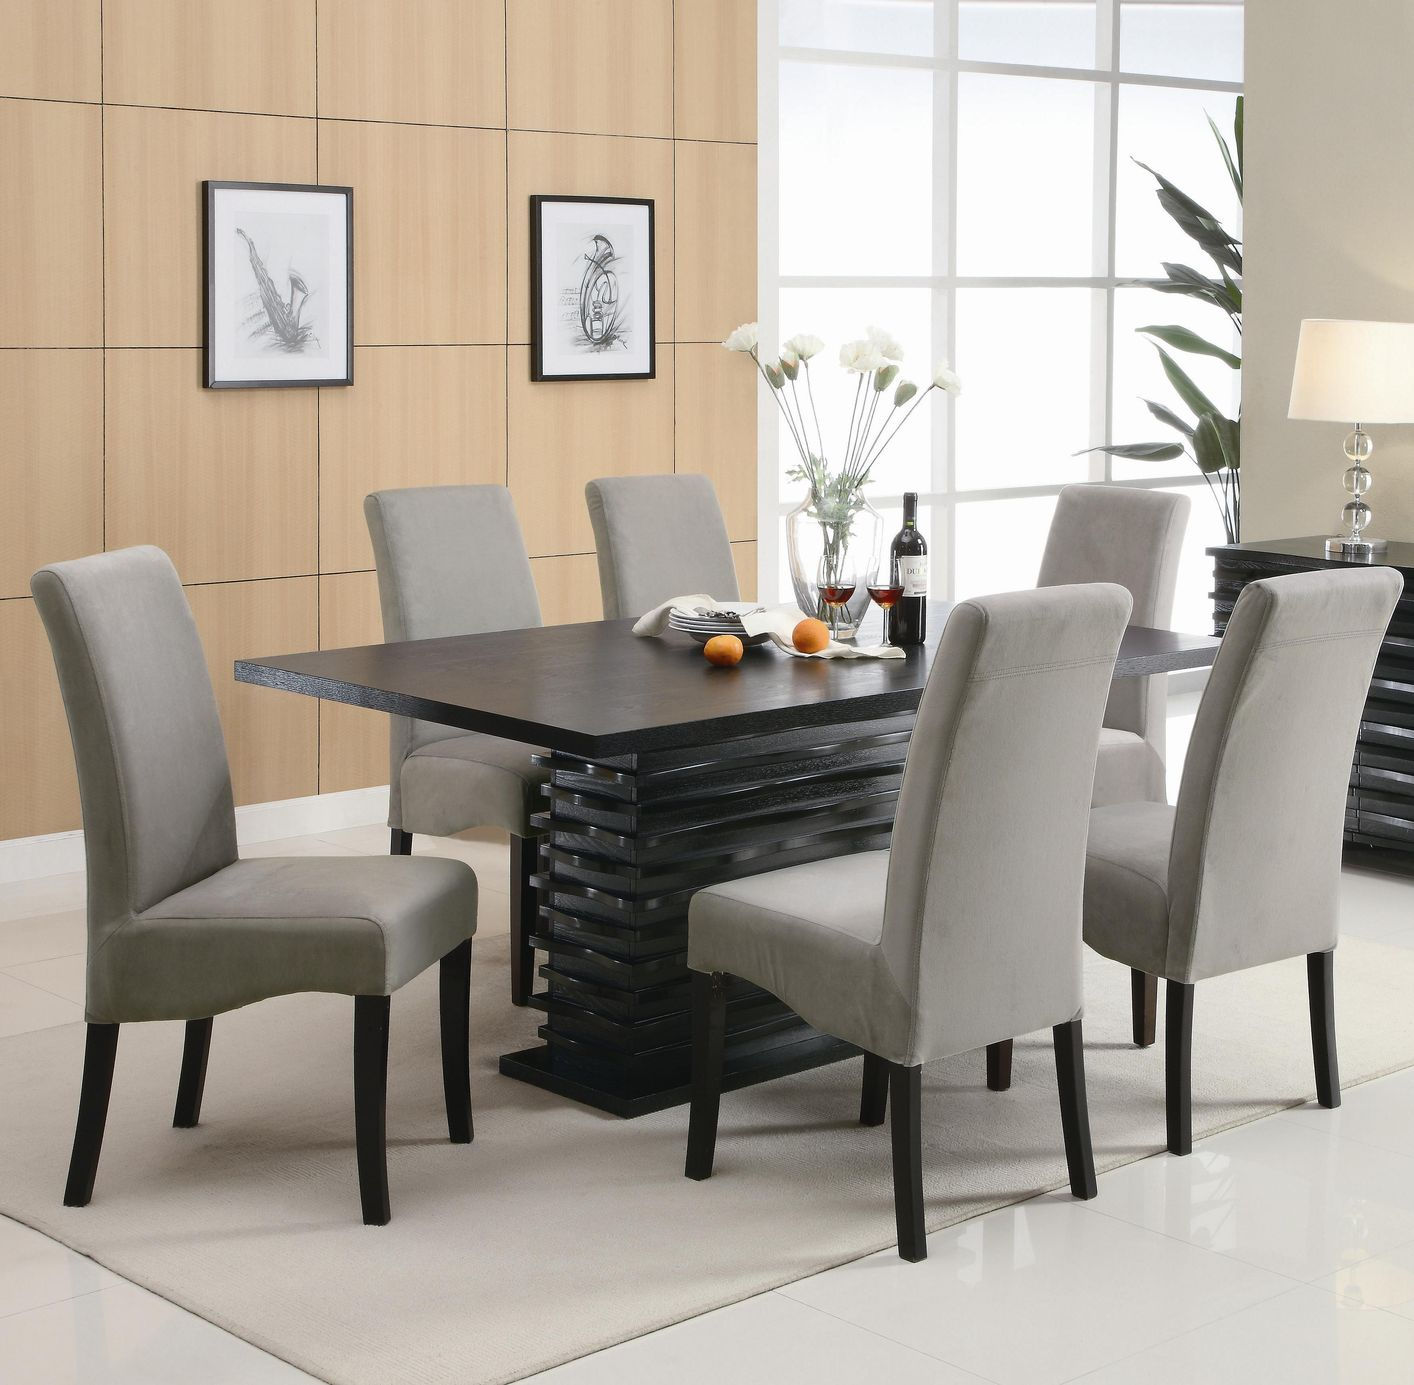 Coaster Stanton 102061 102062 Black Wood Dining Table Set In Los Angeles Ca